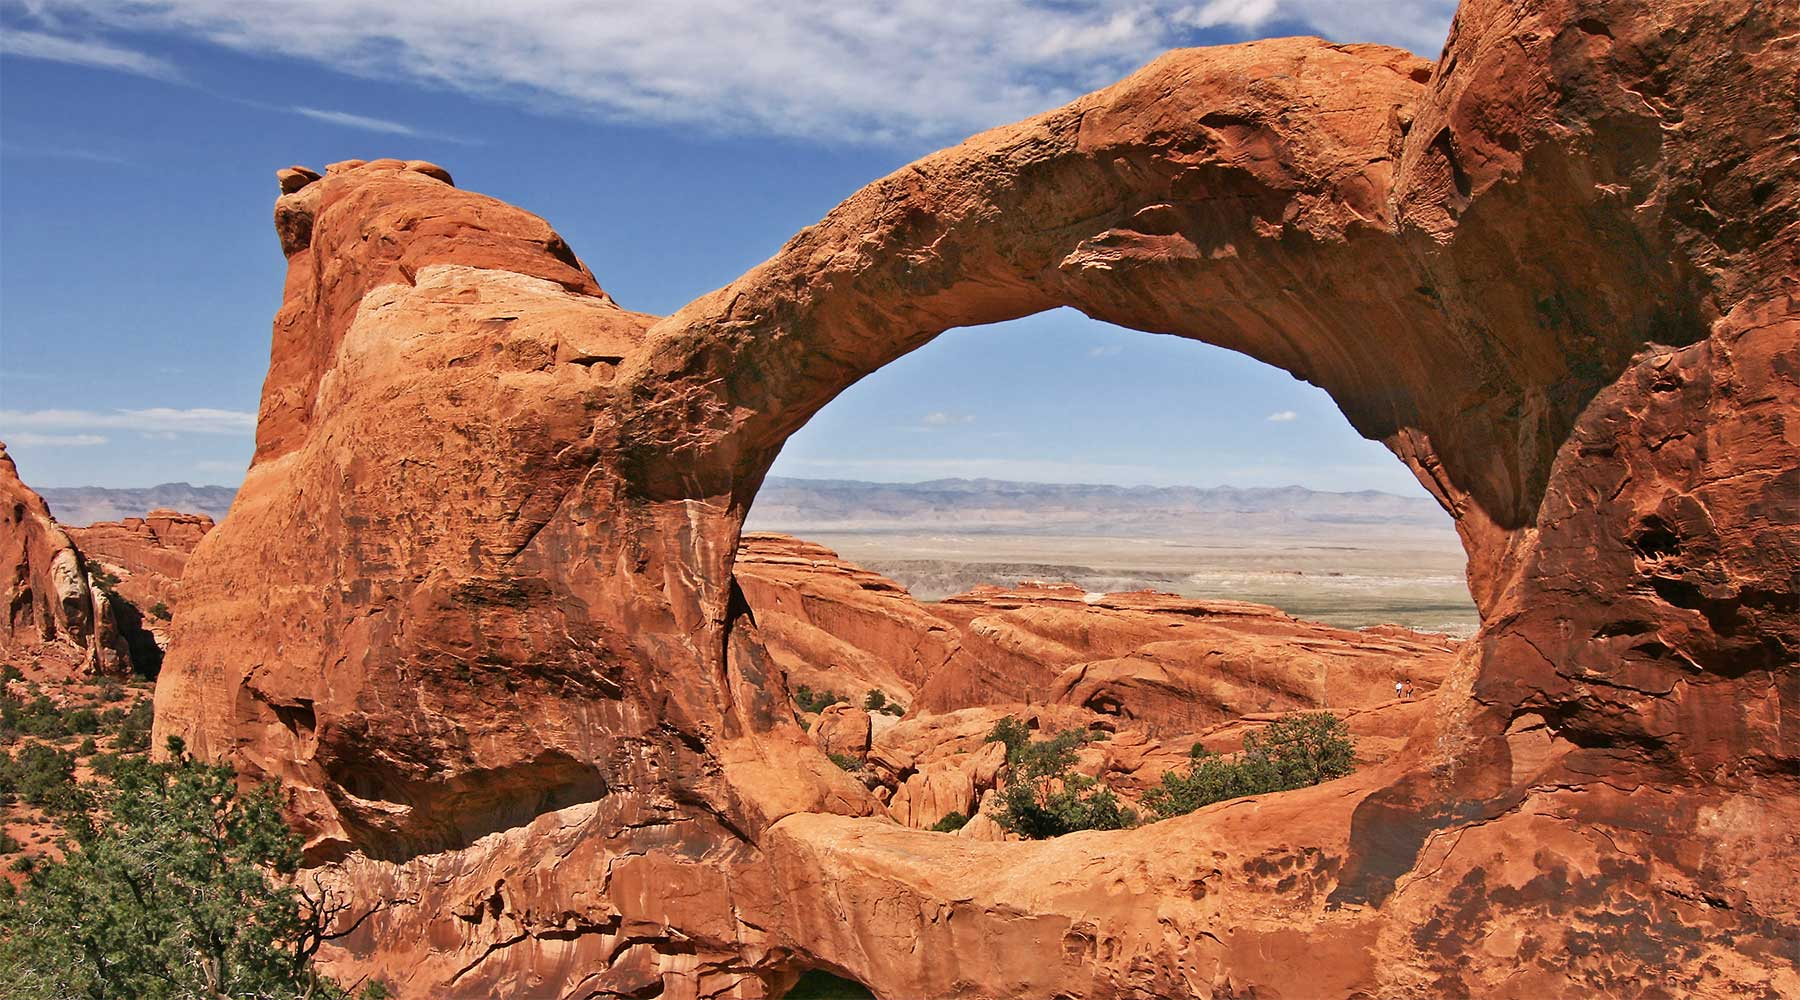 arches, voyage, chinook, zion, grand canyon, chinook, bryce canyon, voyage, travel, trek, randonnée, paria canyon, las vegas, roche, yellowstone, utah